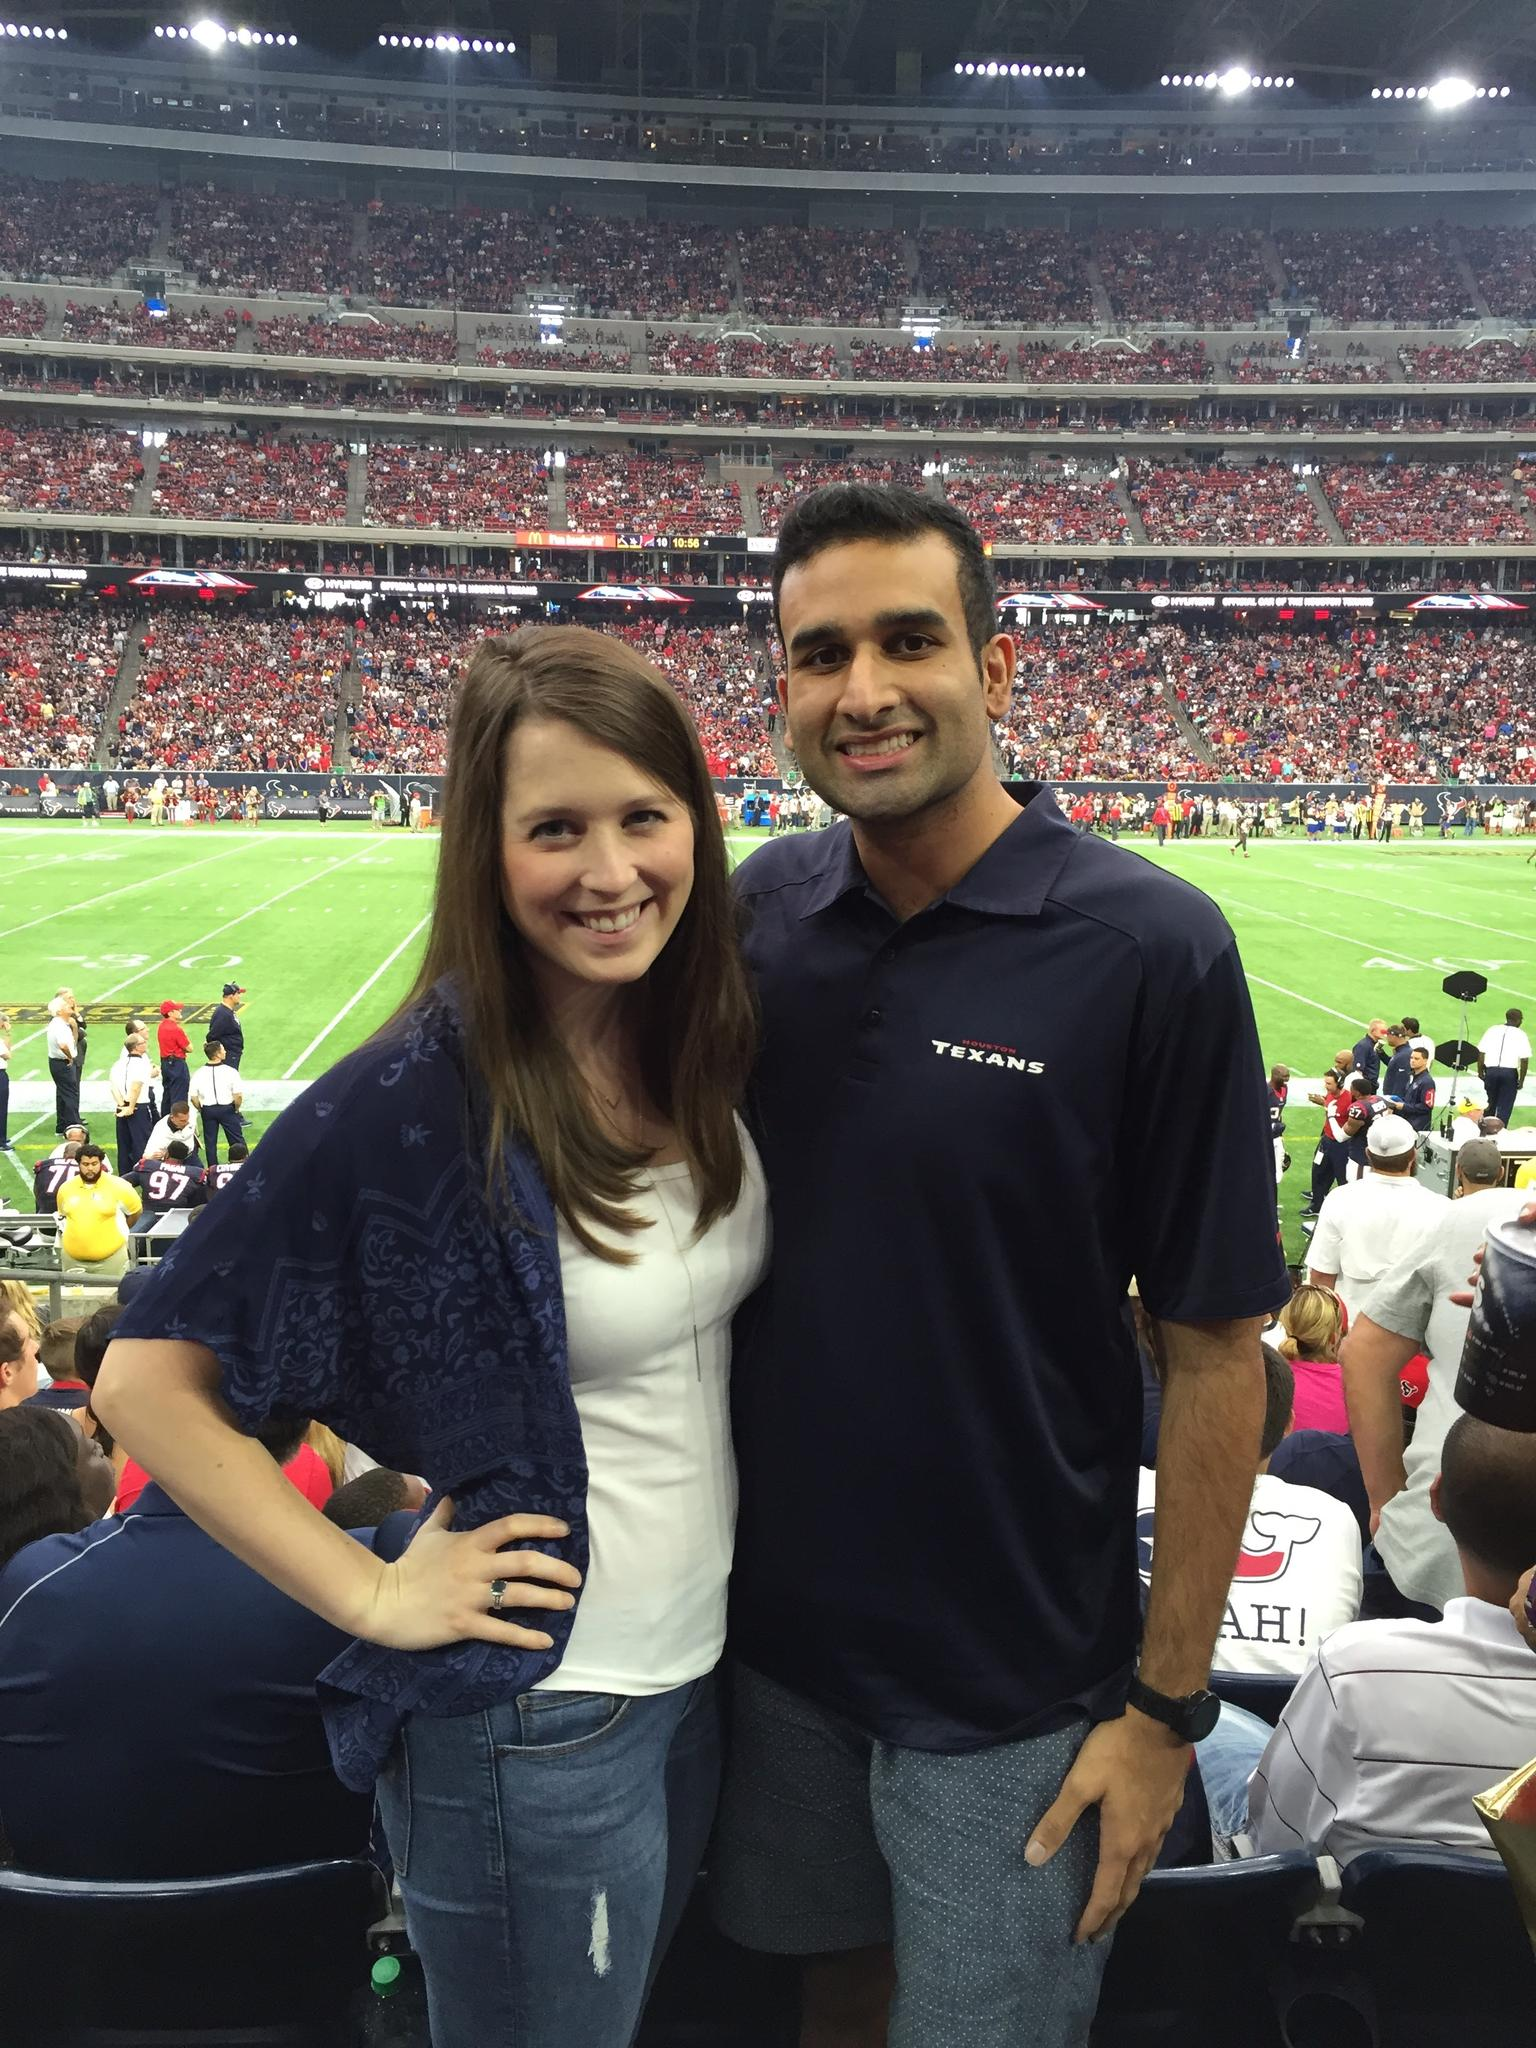 Shawn has fully converted Meredith to a Texans fan!